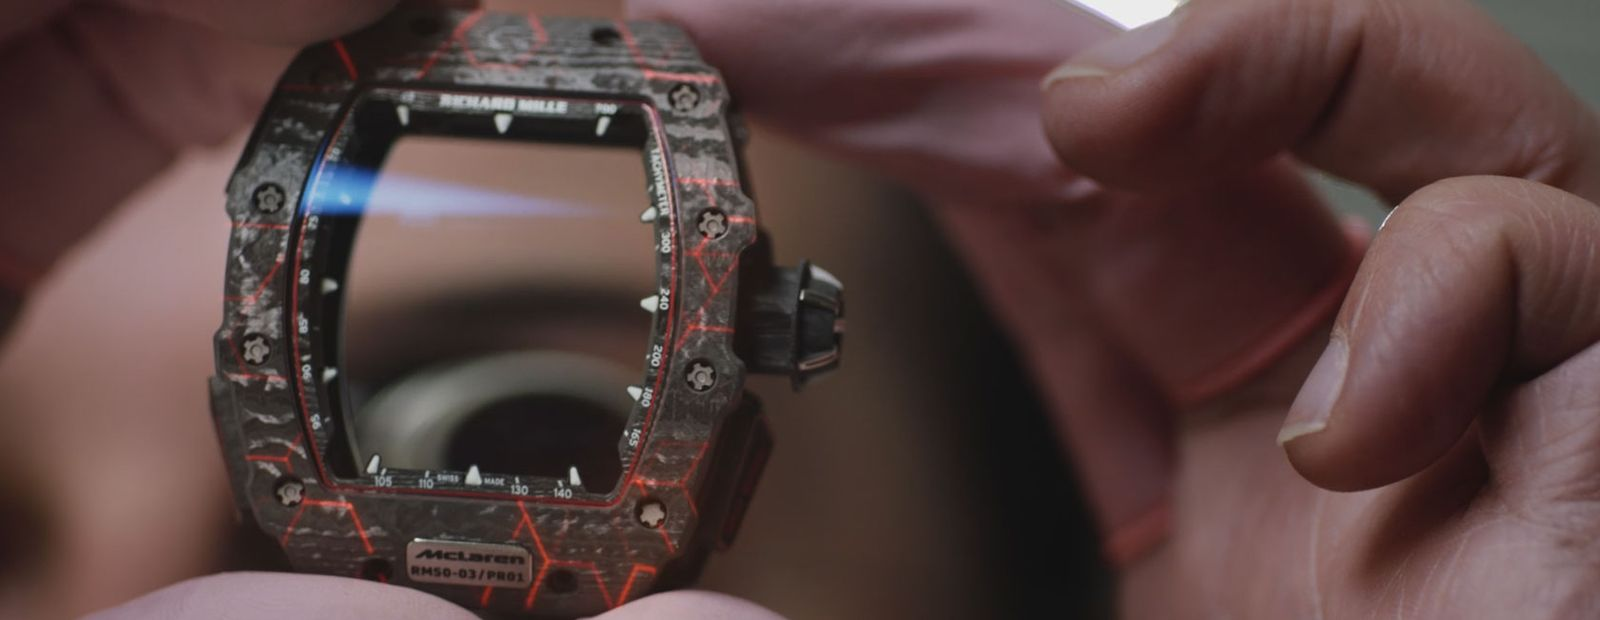 A racing machine on the wrist: the story of graphene